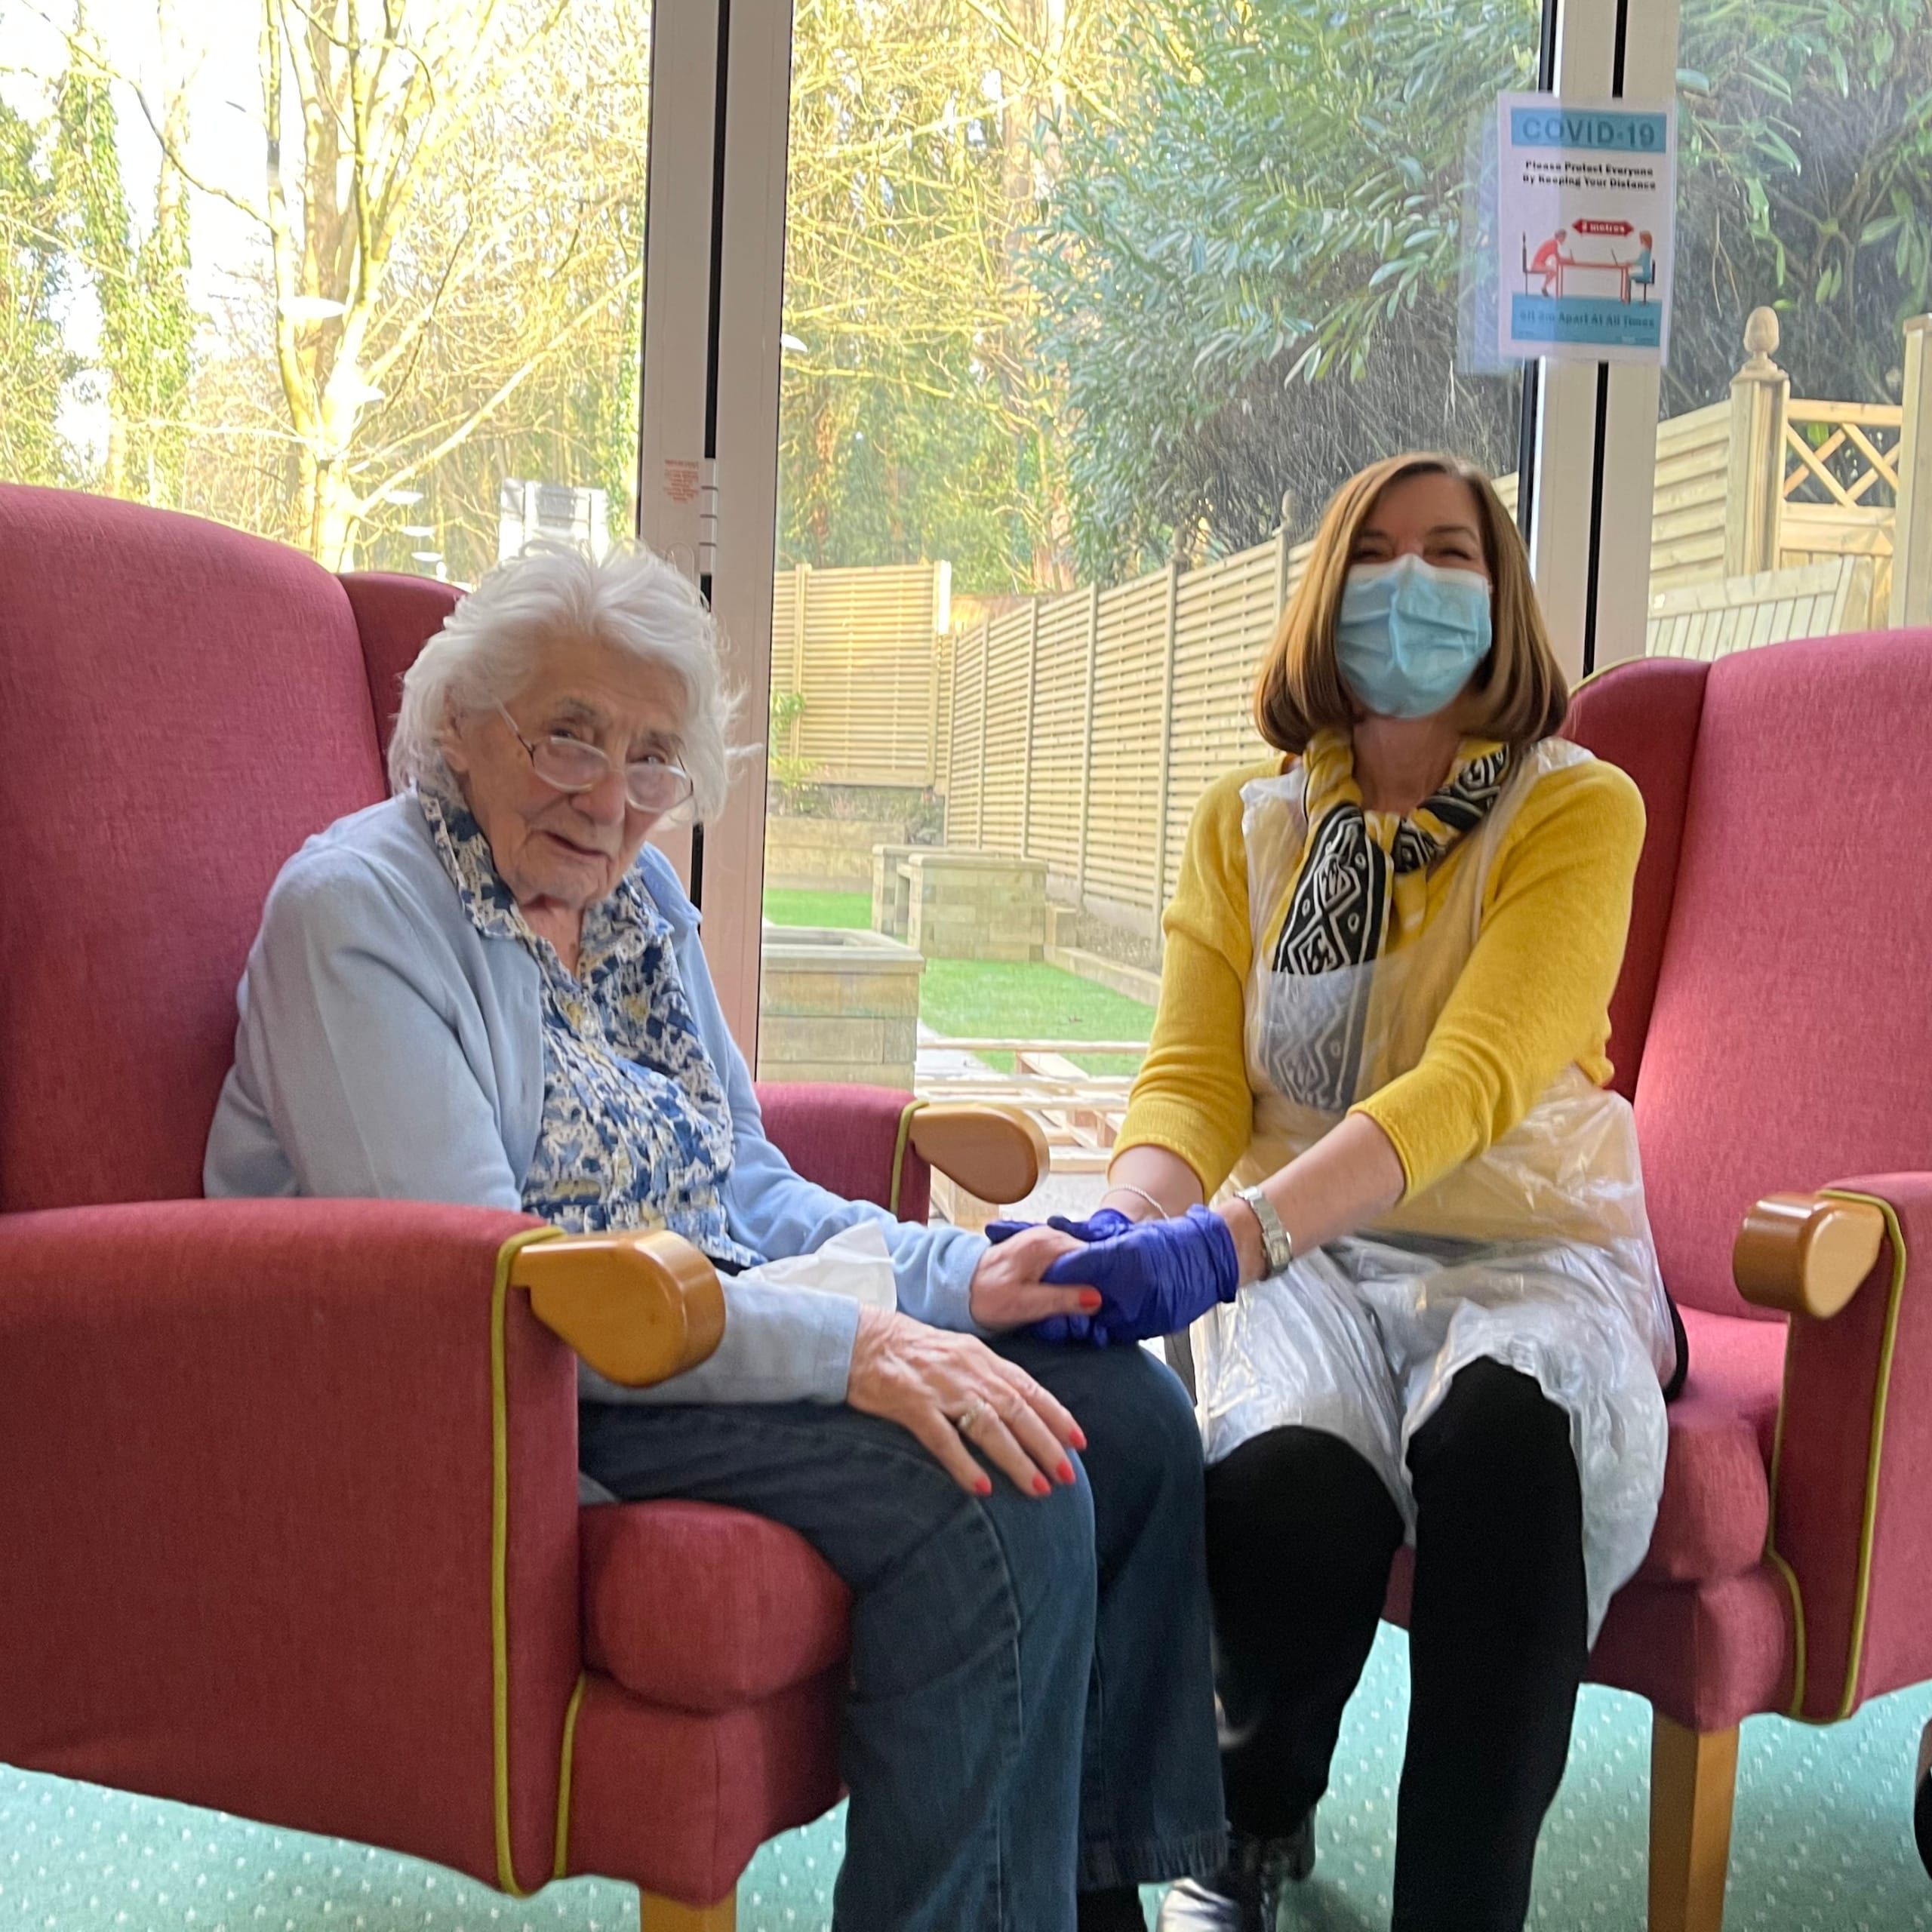 Westerham Place Care Home resident Joan welcomes her daughter in the designated visiting room for the first time.